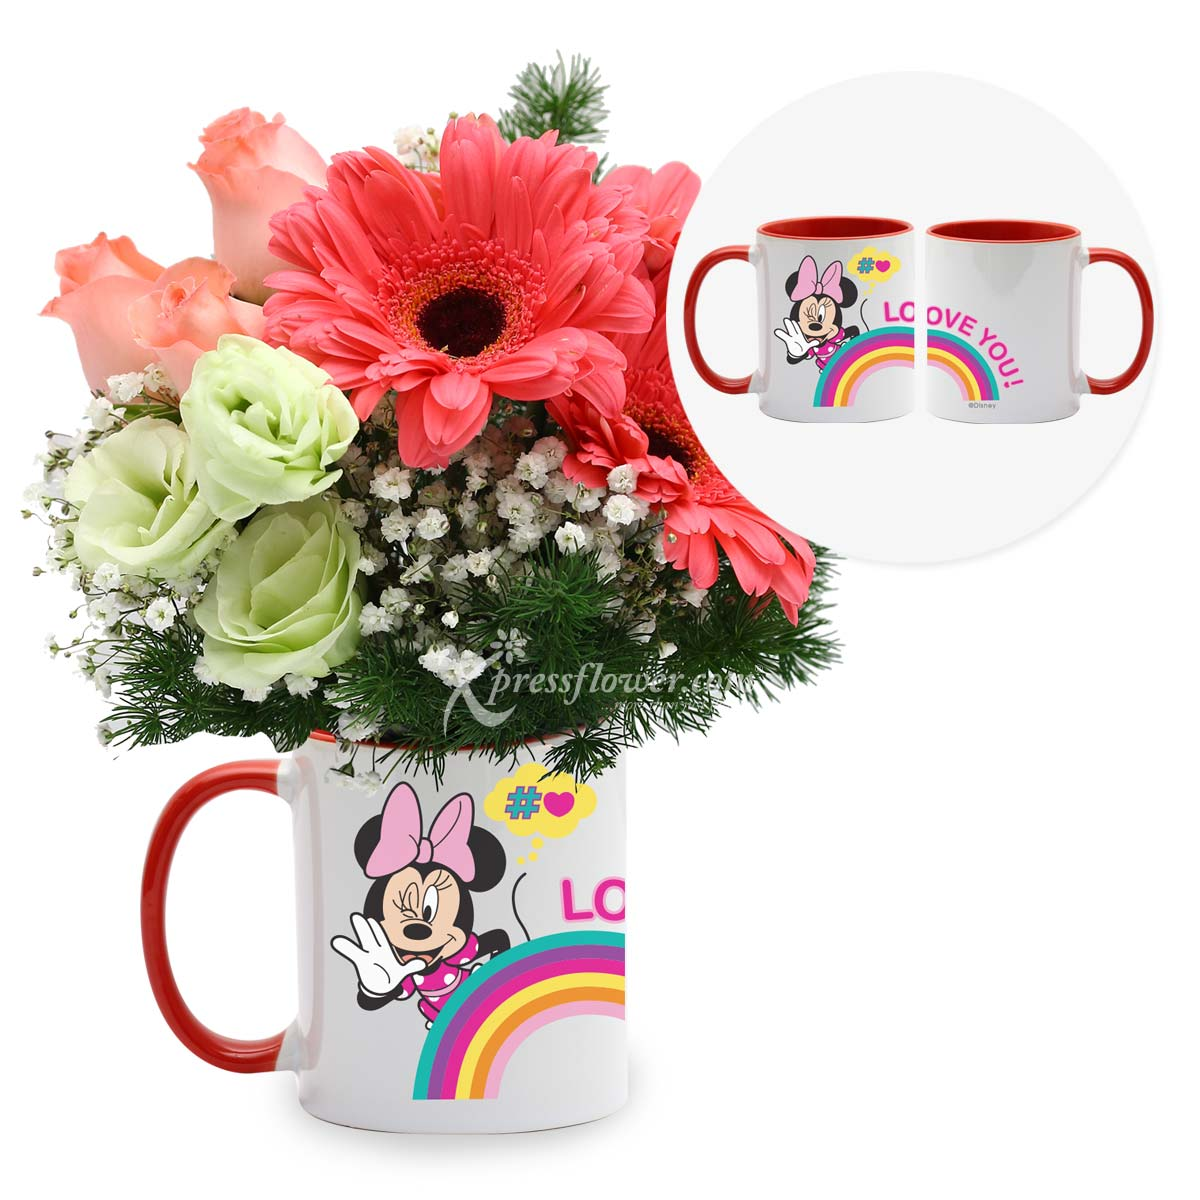 Timeless Moments (3 pink gerberas & 3 pink roses with Disney cup)